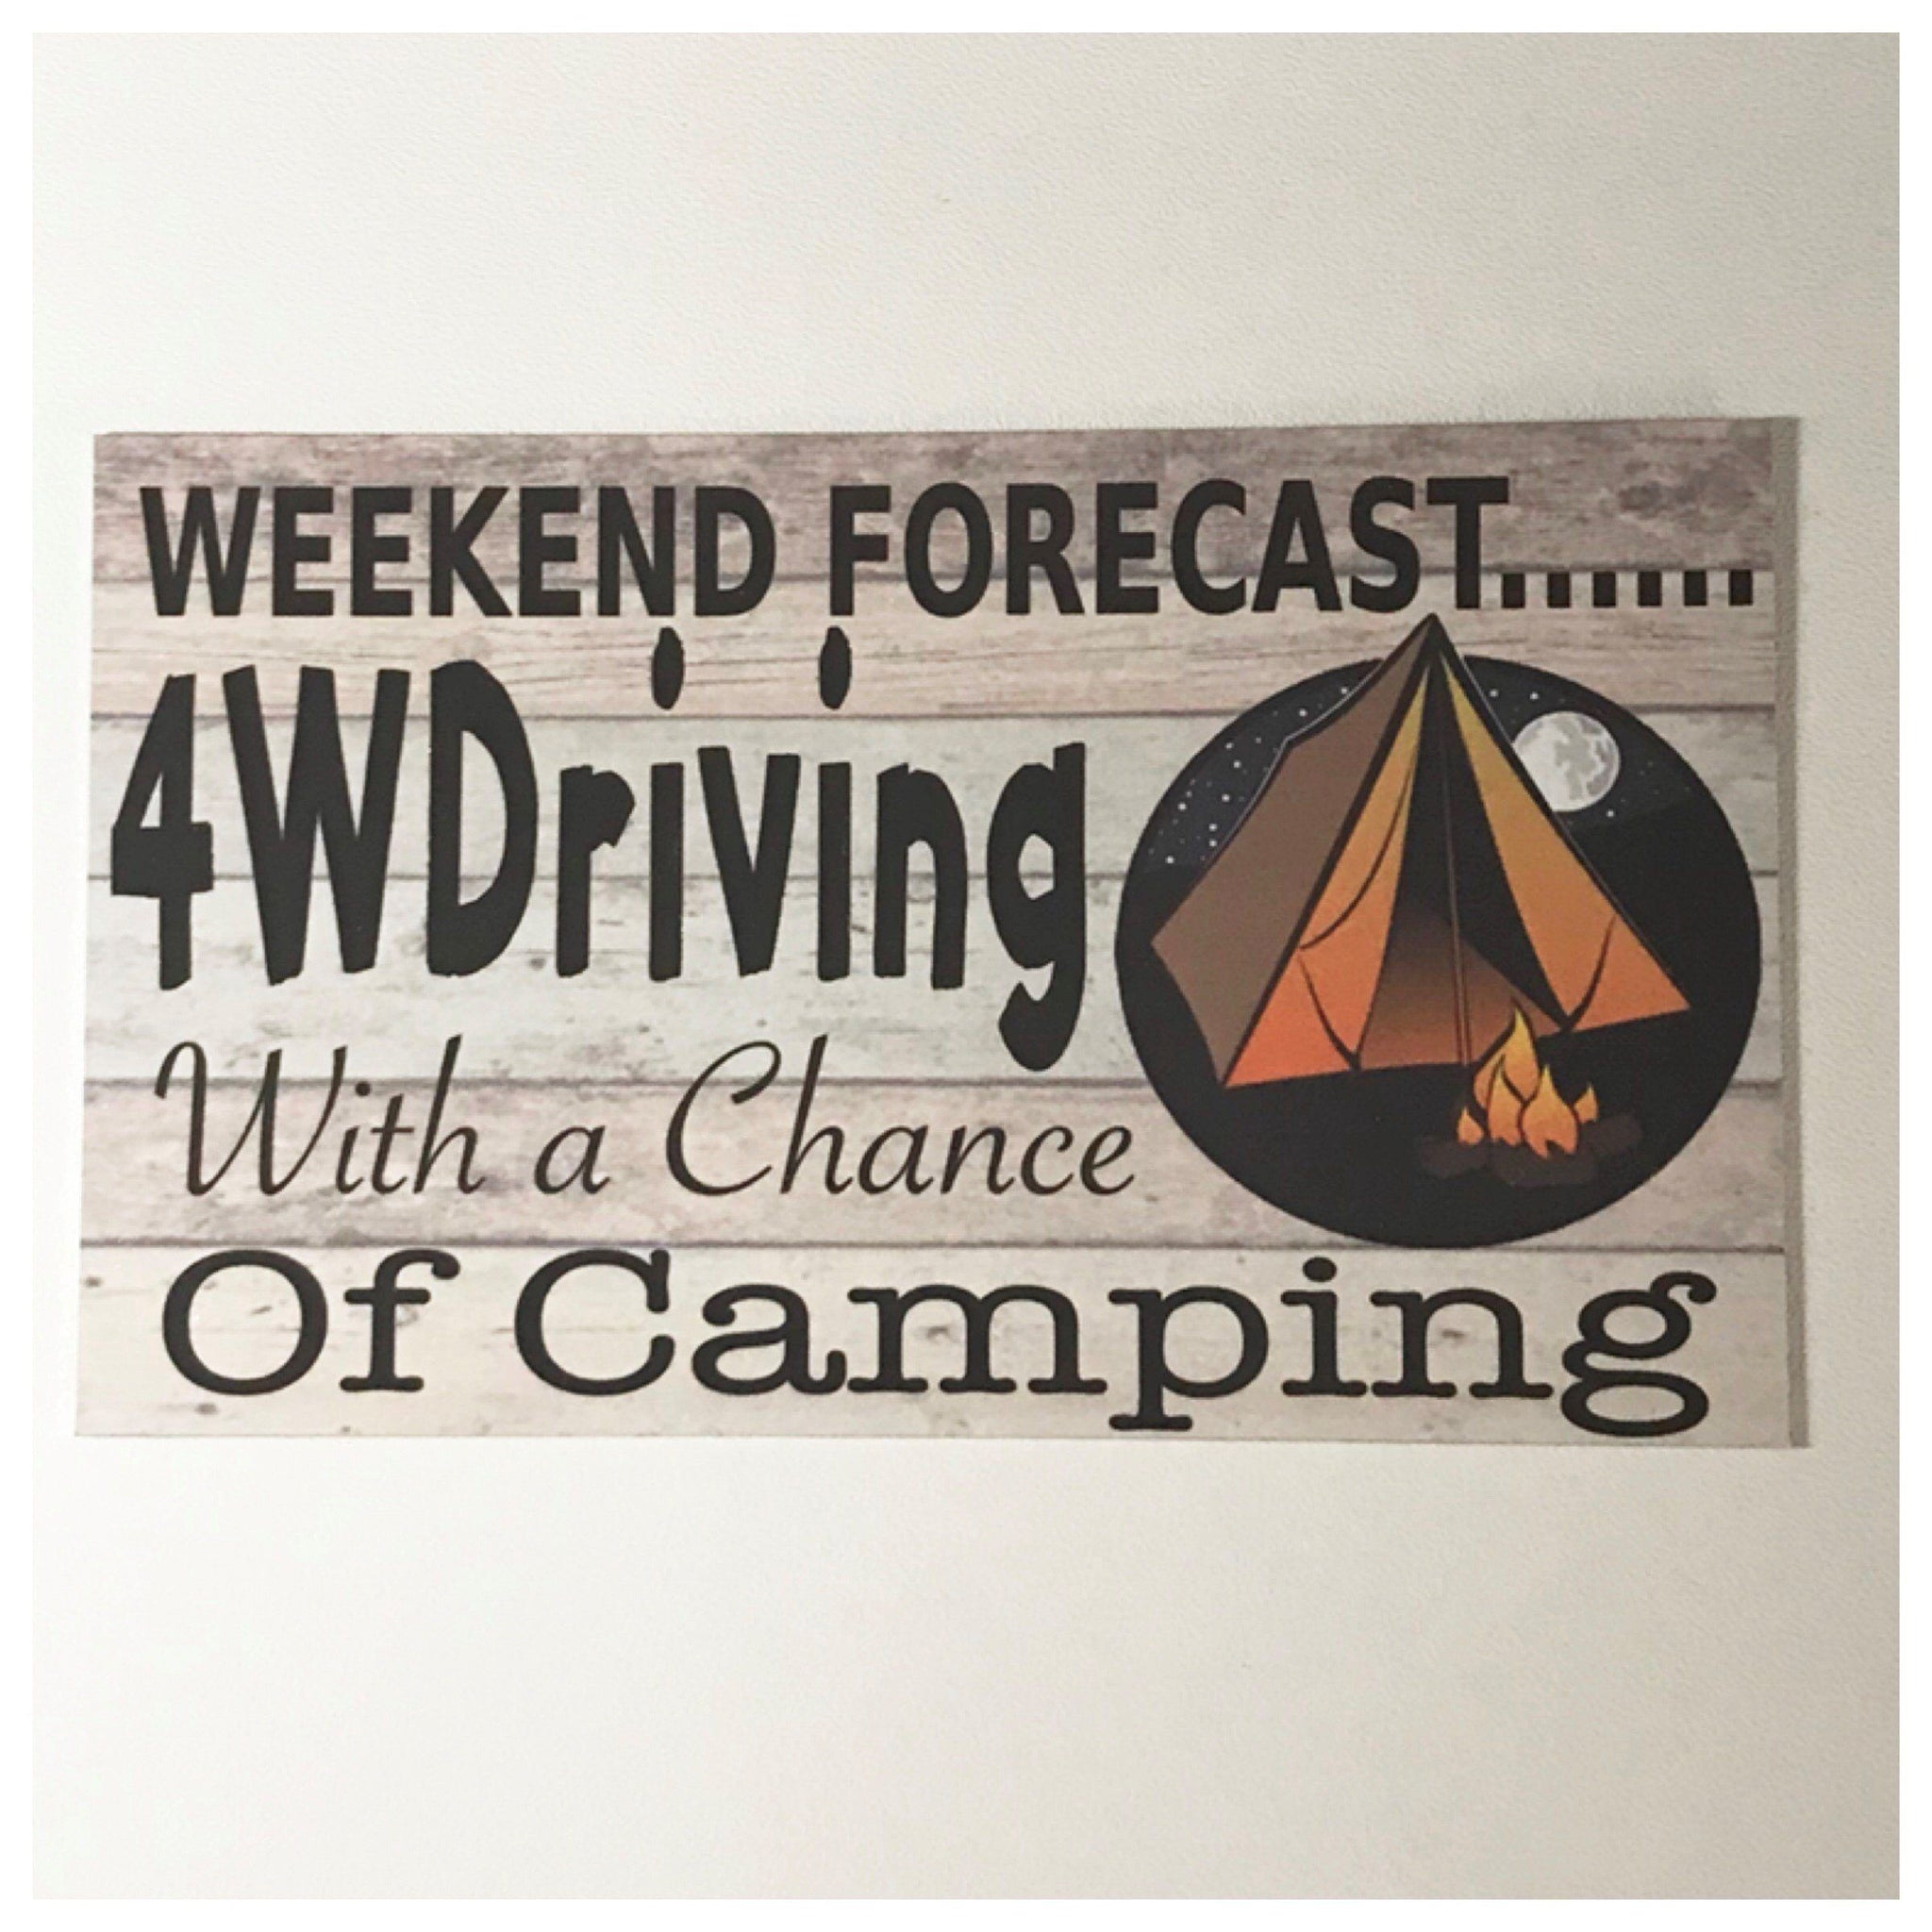 Weekend Forecast 4WDriving 4WD Camping Sign - The Renmy Store